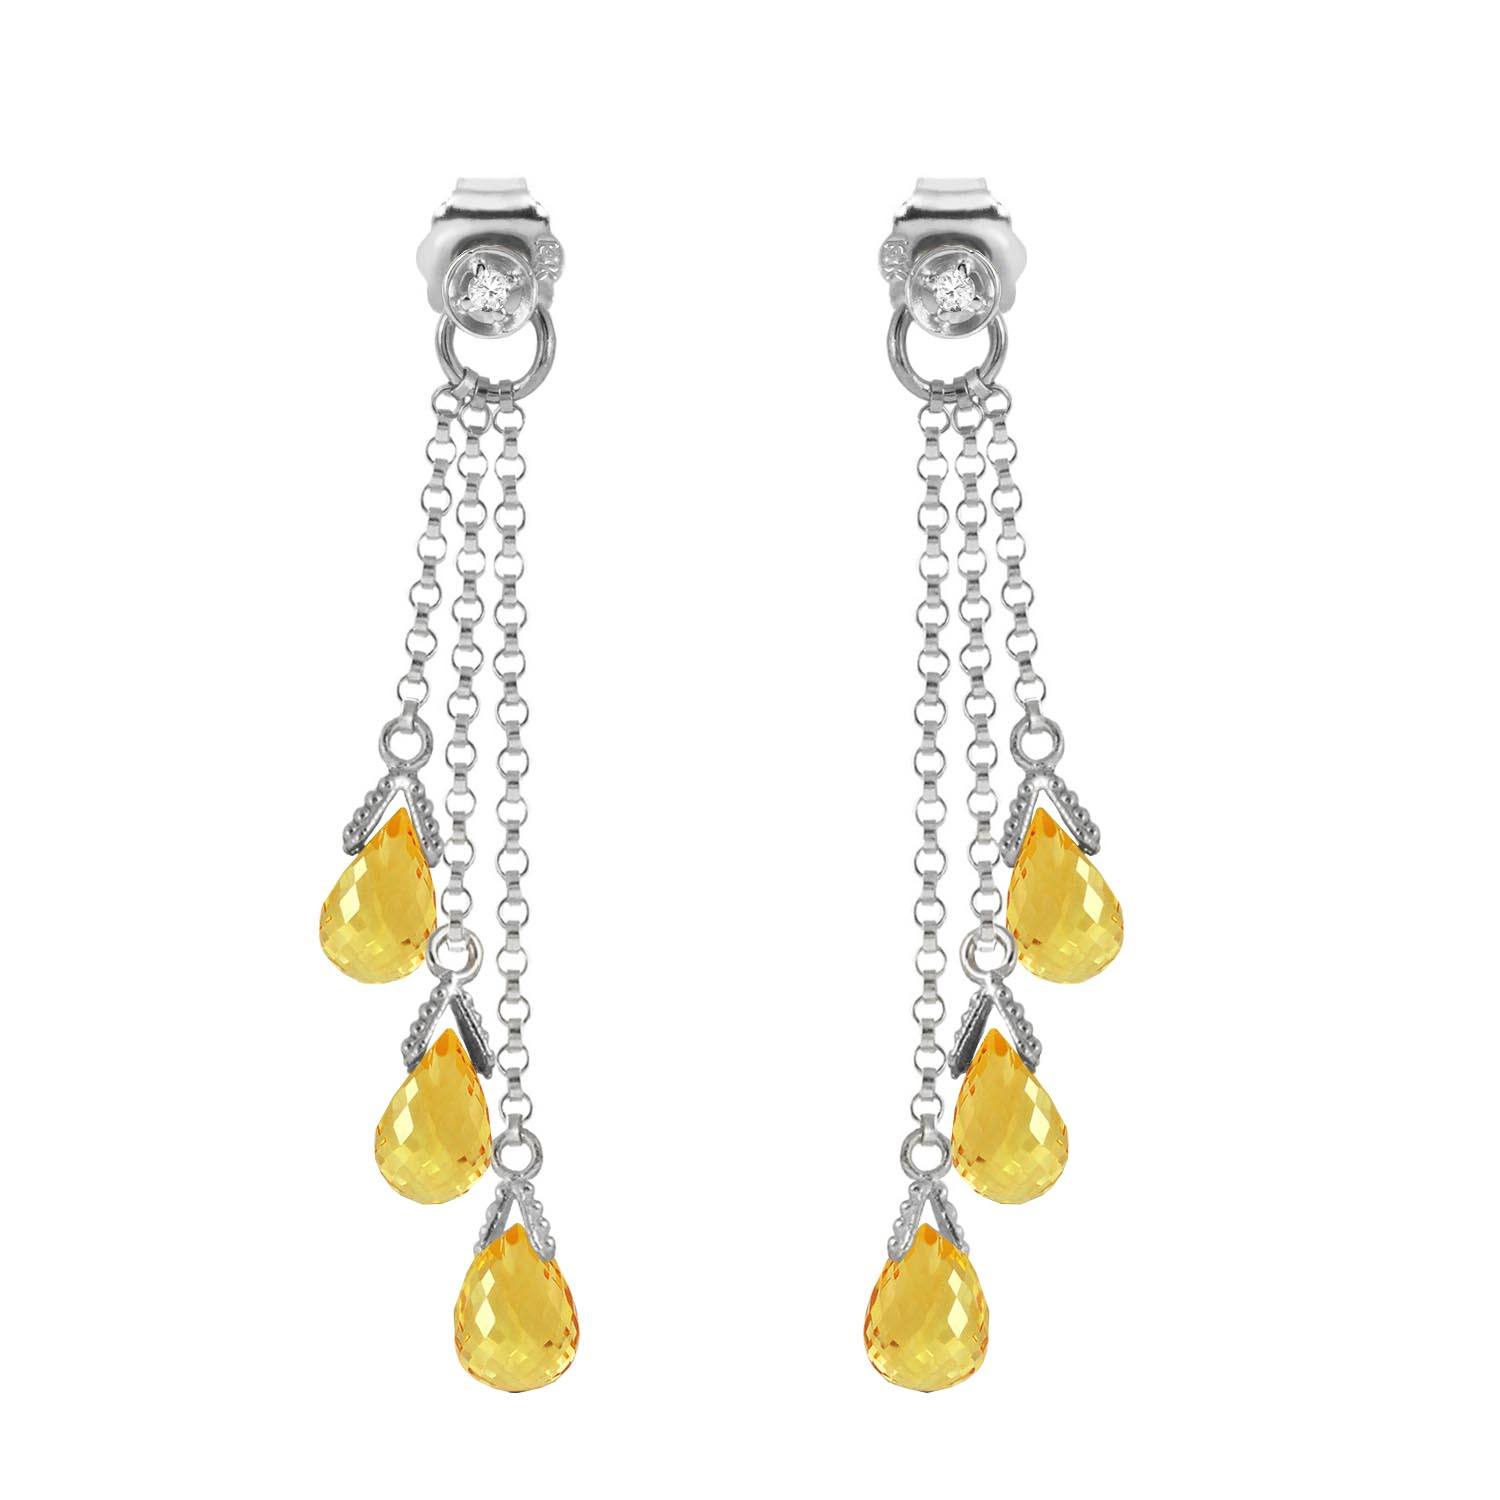 Citrine and Diamond Trilogy Droplet Earrings 7.35ctw in 9ct White Gold